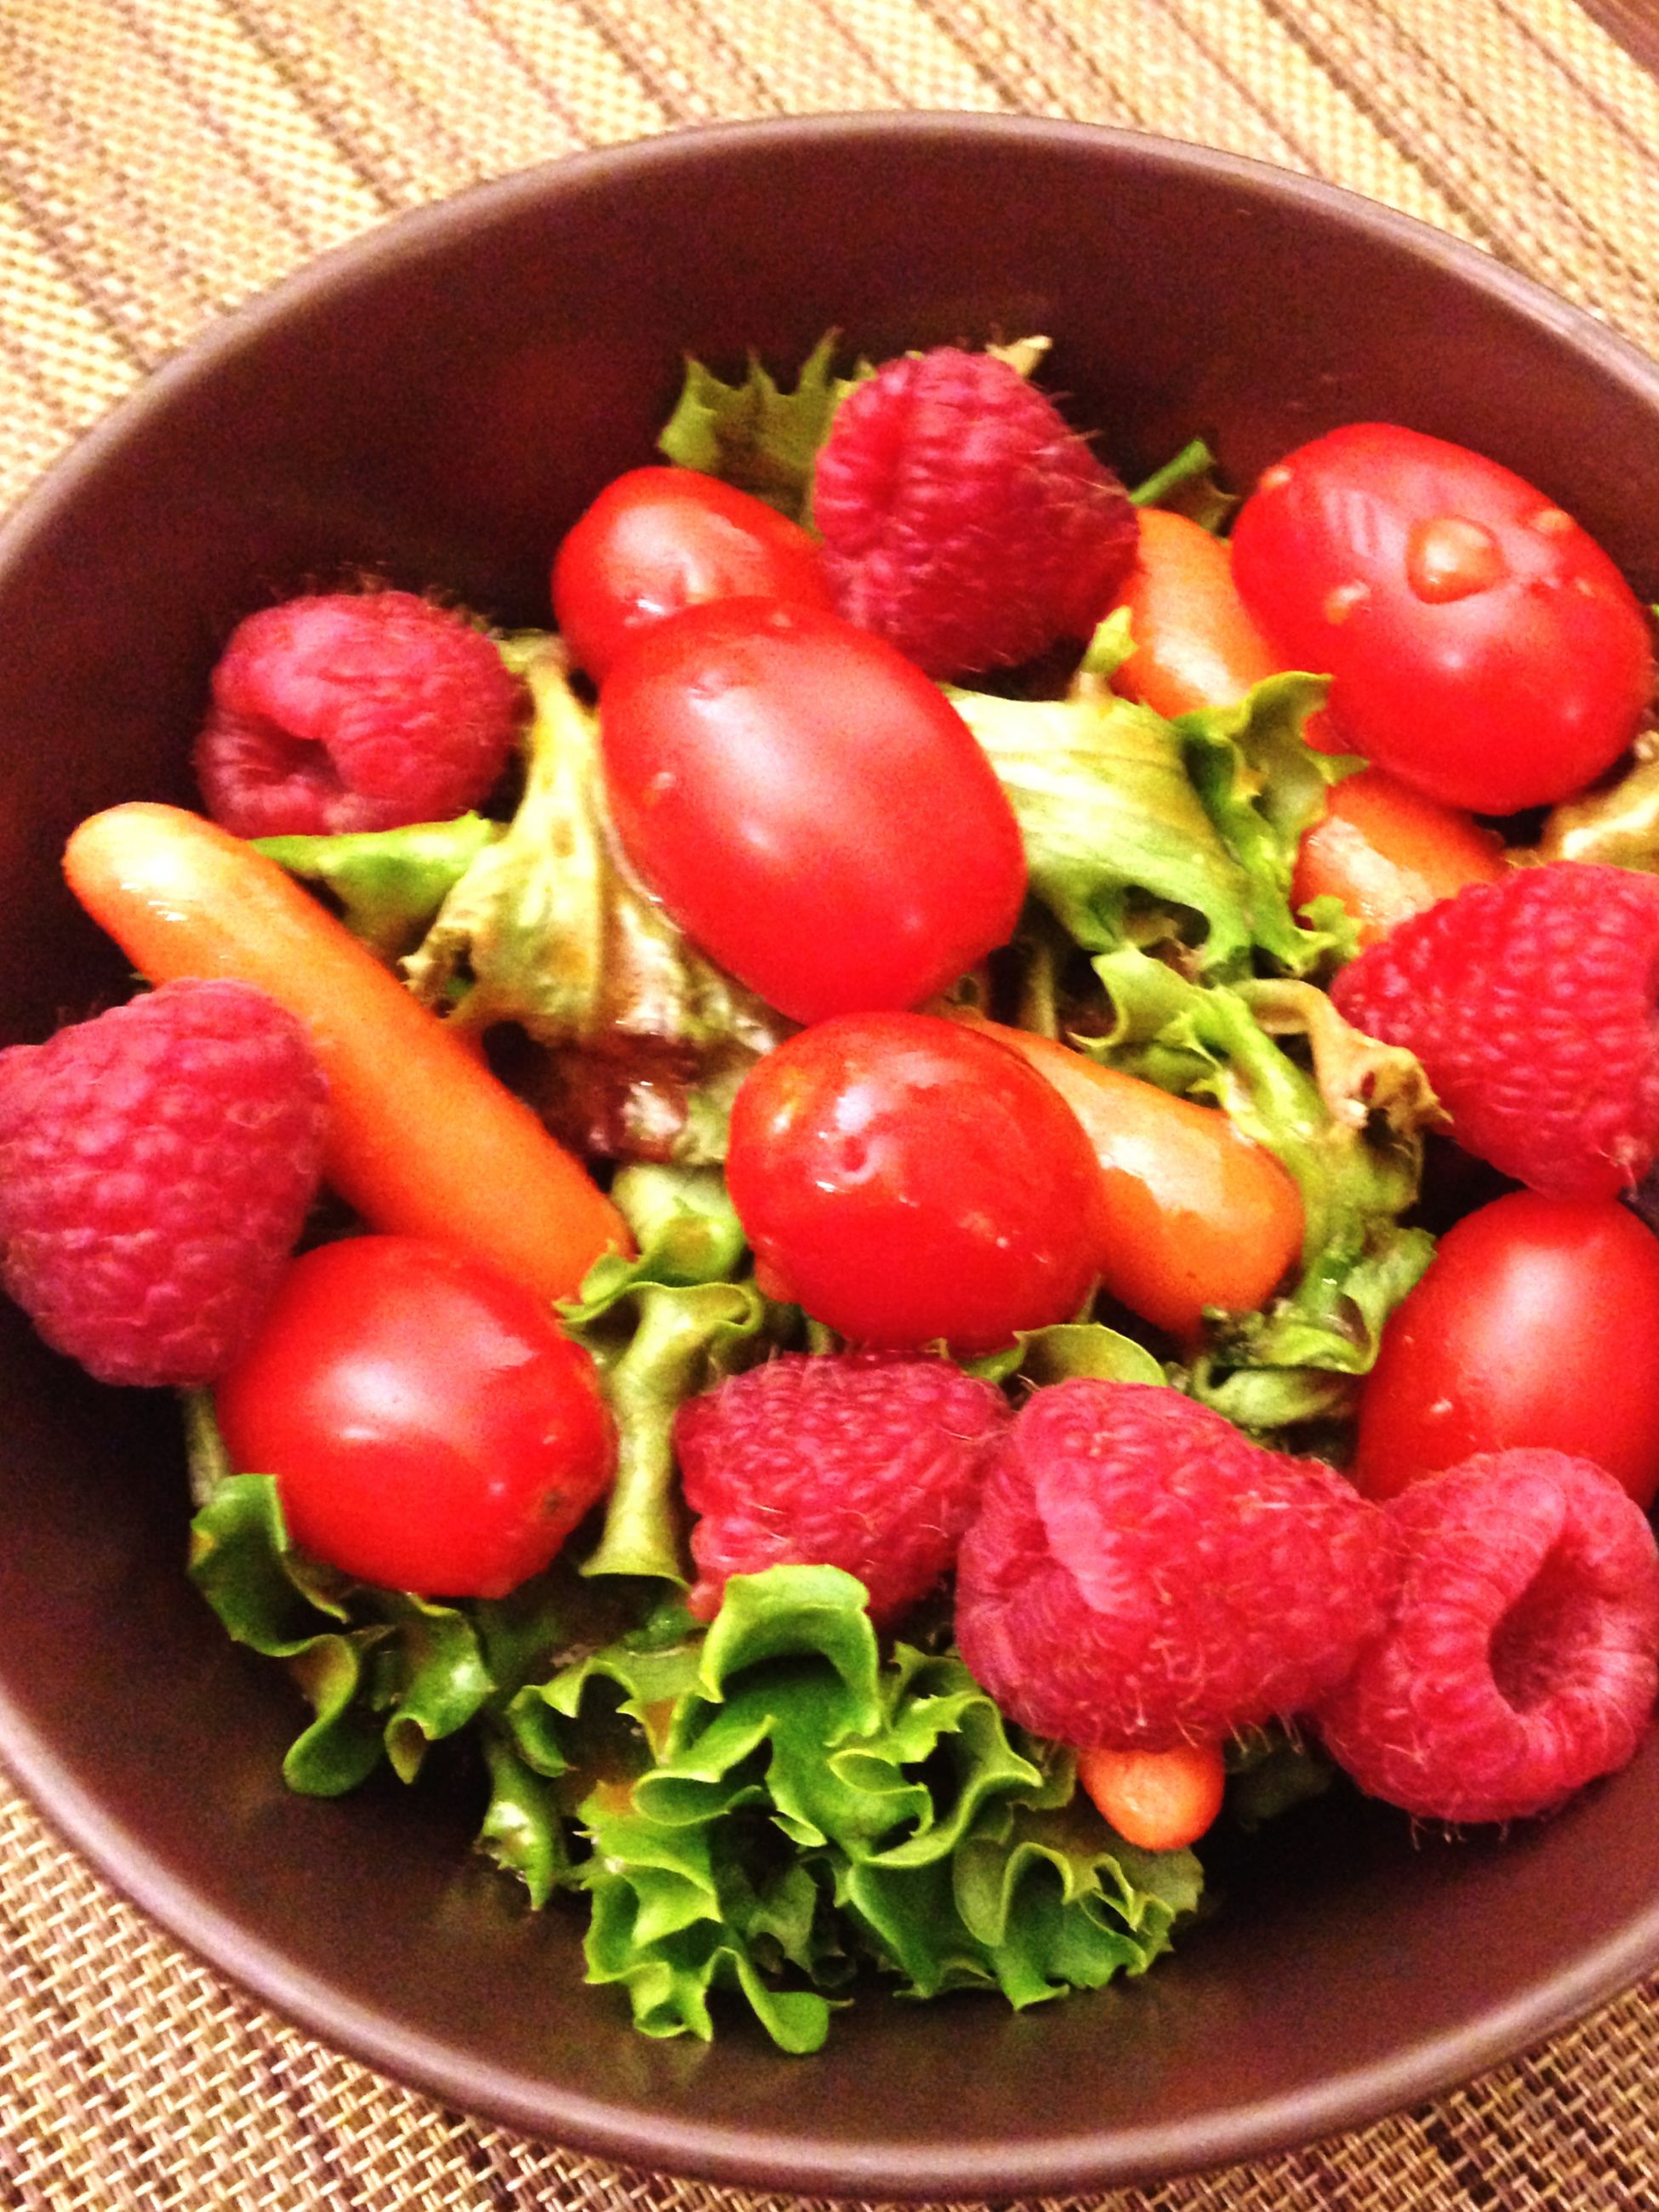 food and drink, food, freshness, healthy eating, indoors, red, still life, plate, tomato, table, vegetable, bowl, ready-to-eat, high angle view, salad, fruit, directly above, close-up, strawberry, serving size